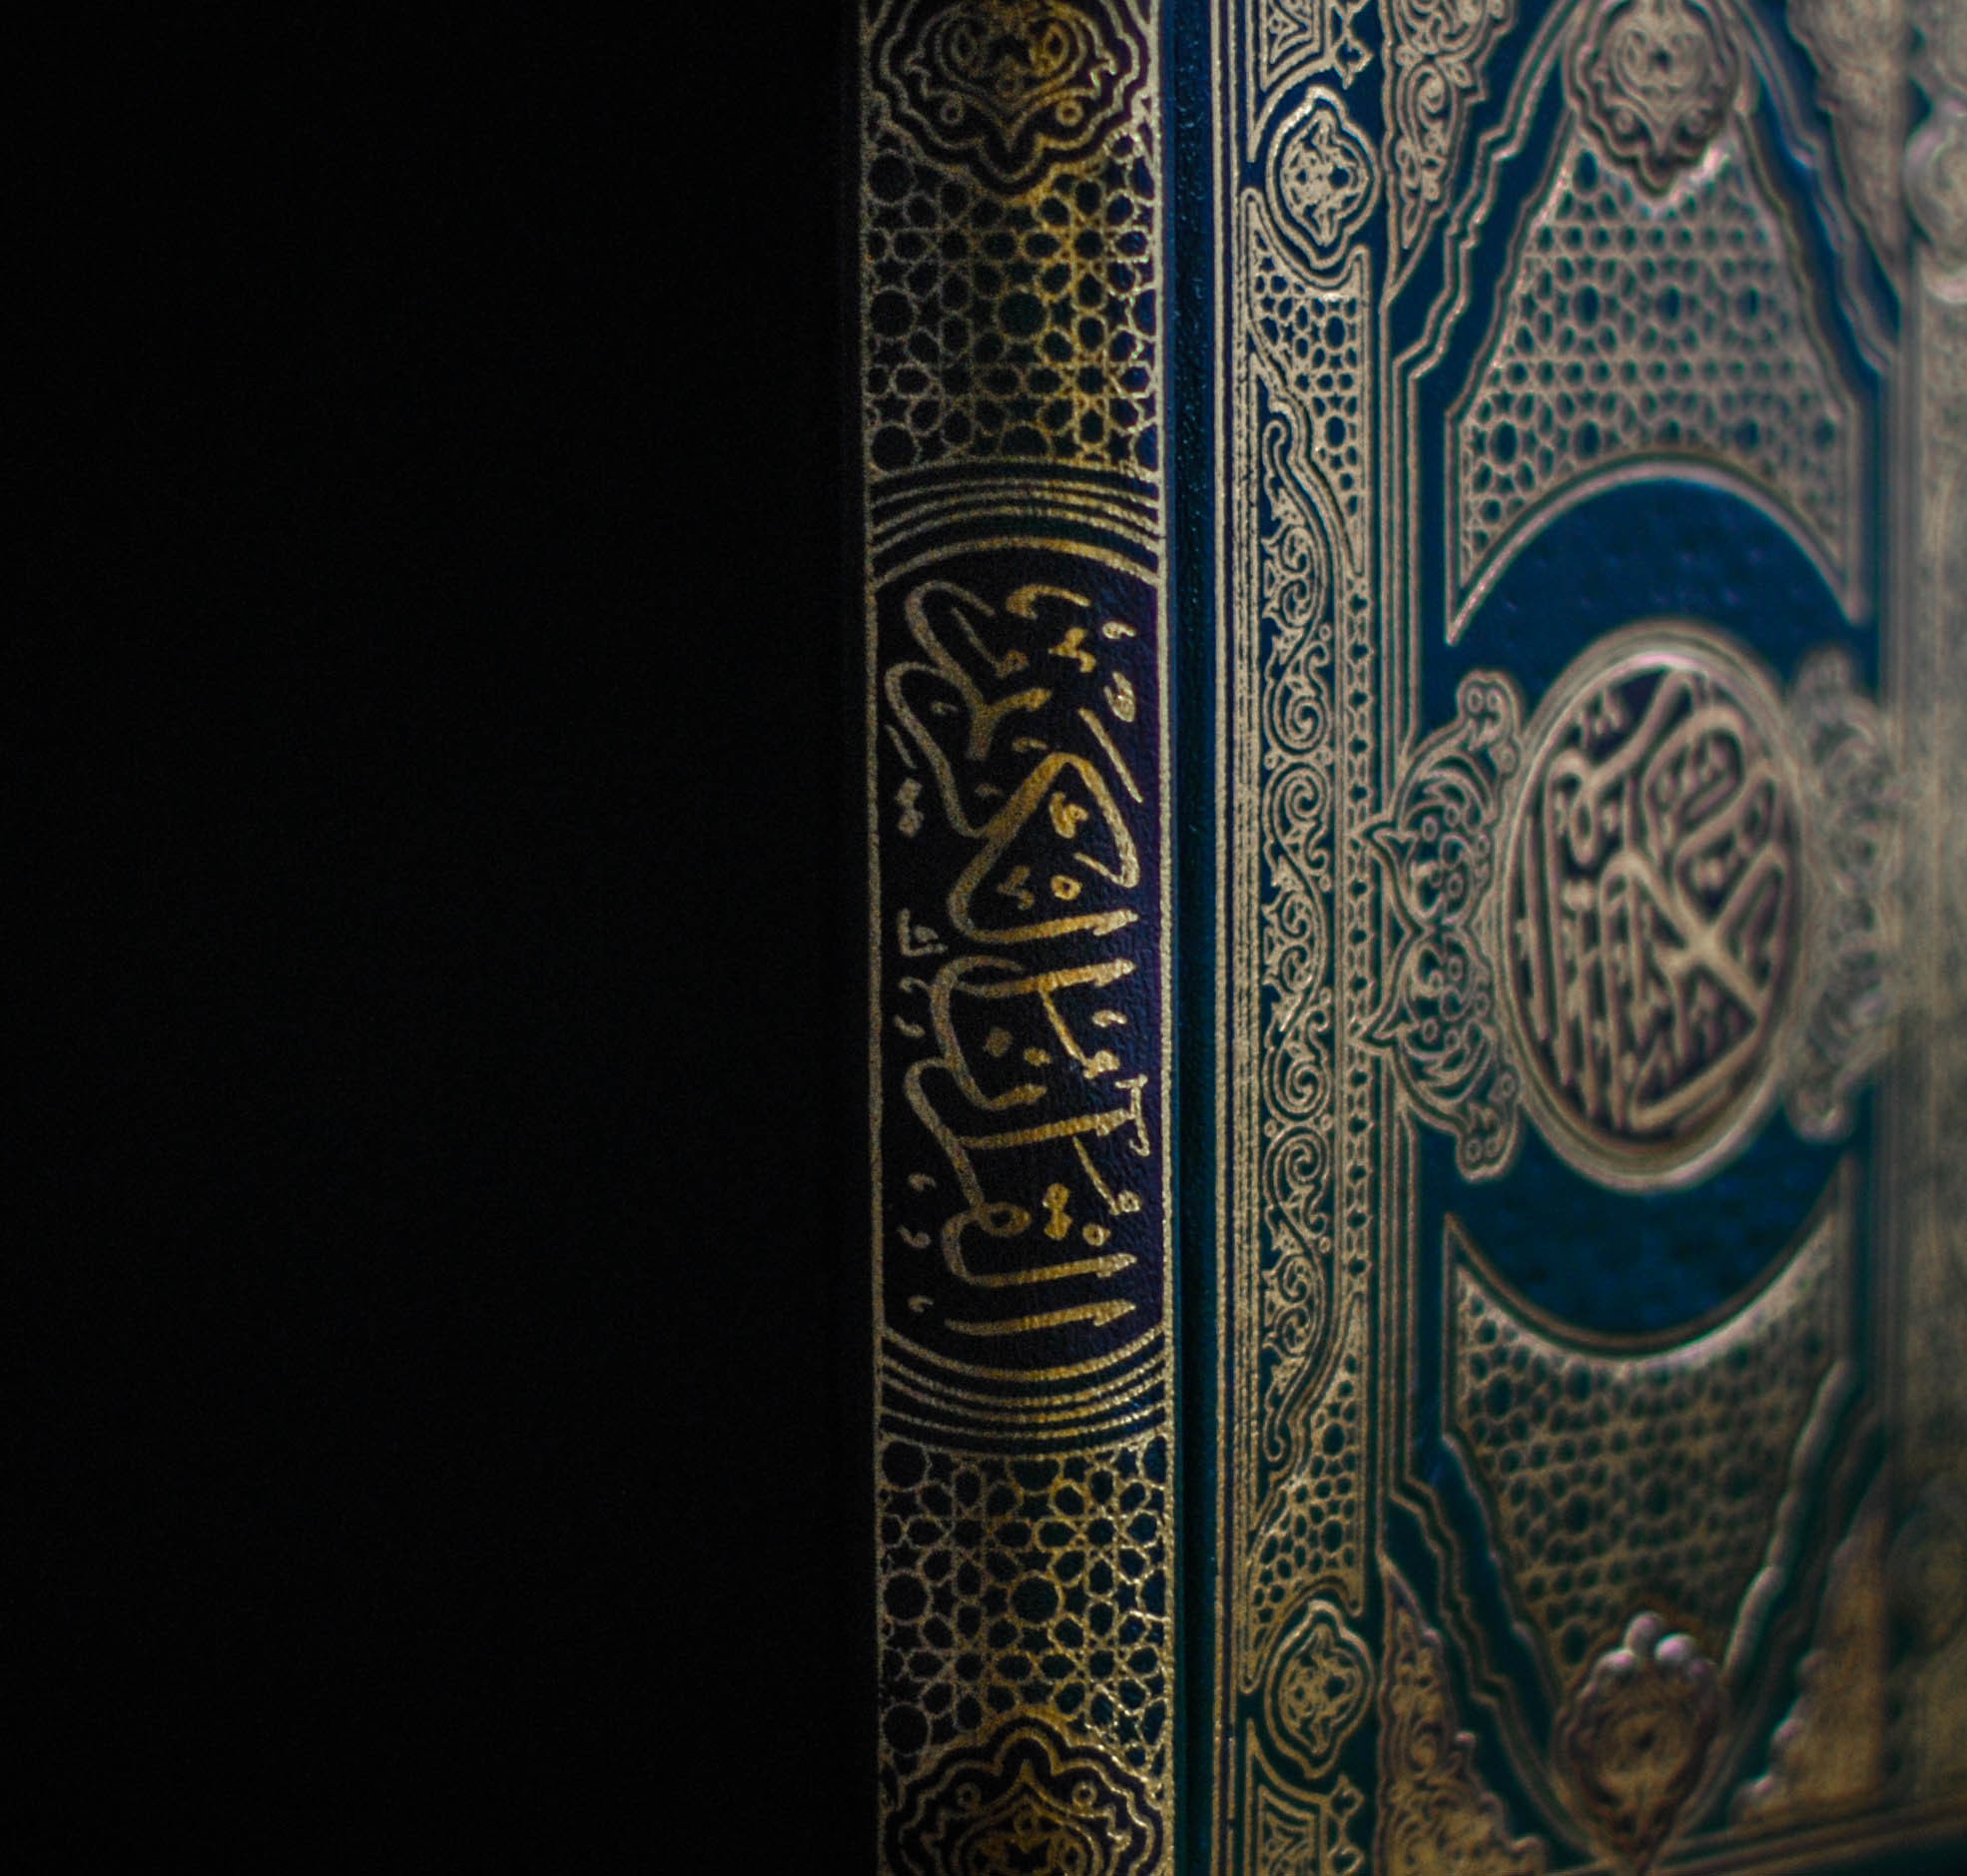 Photograph Qur'an by Lora Doerfer on 500px